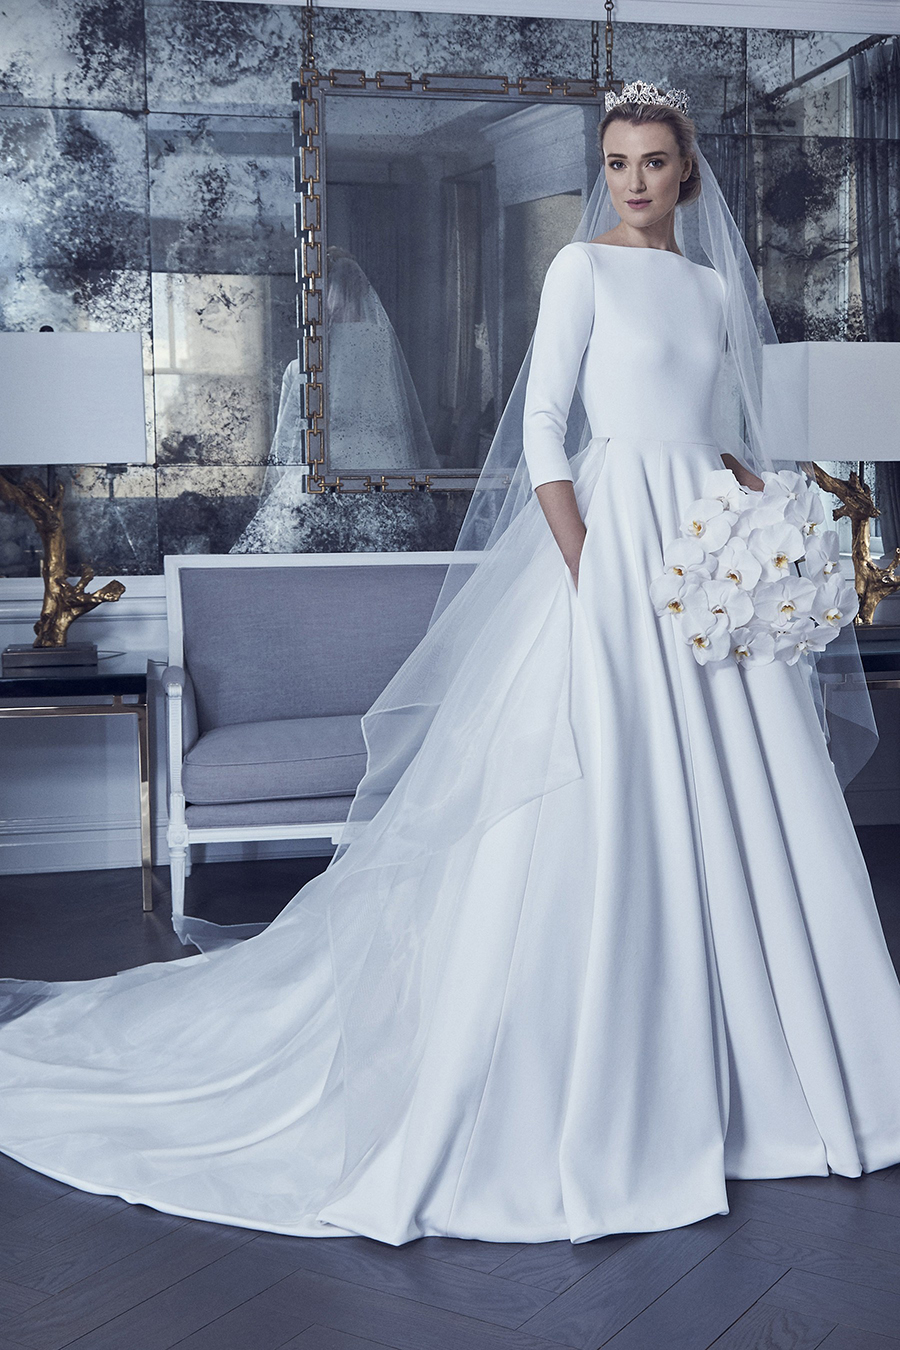 23e171d197b6 Pearl gown made of stretch silk crepe featuring a three-quarter sleeve boat  neck bodice and a ball gown skirt, accented with covered buttons to end of  train